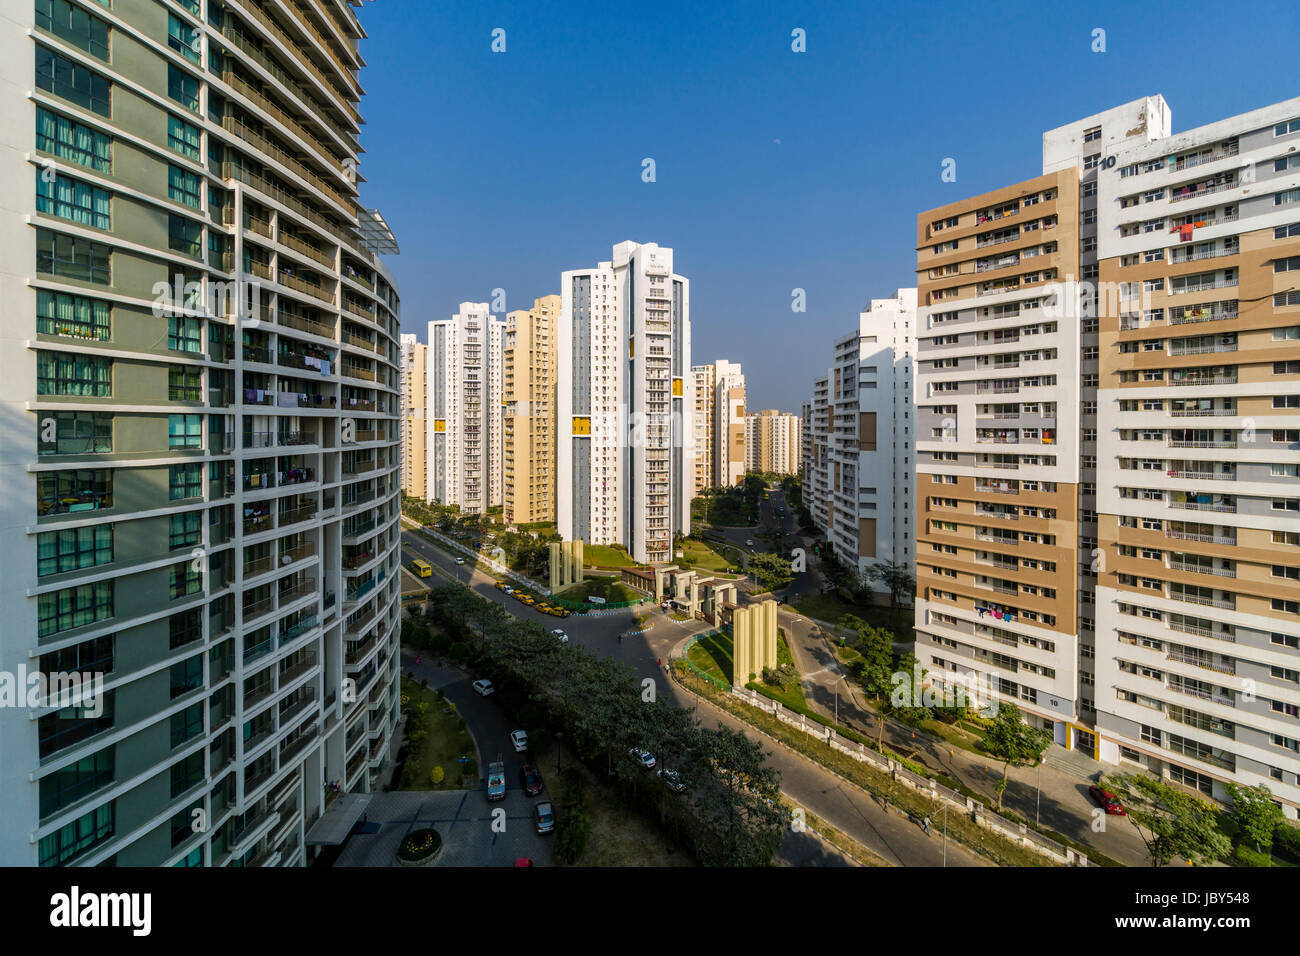 Aerial view on buildings of the modern suburb New Town - Stock Image